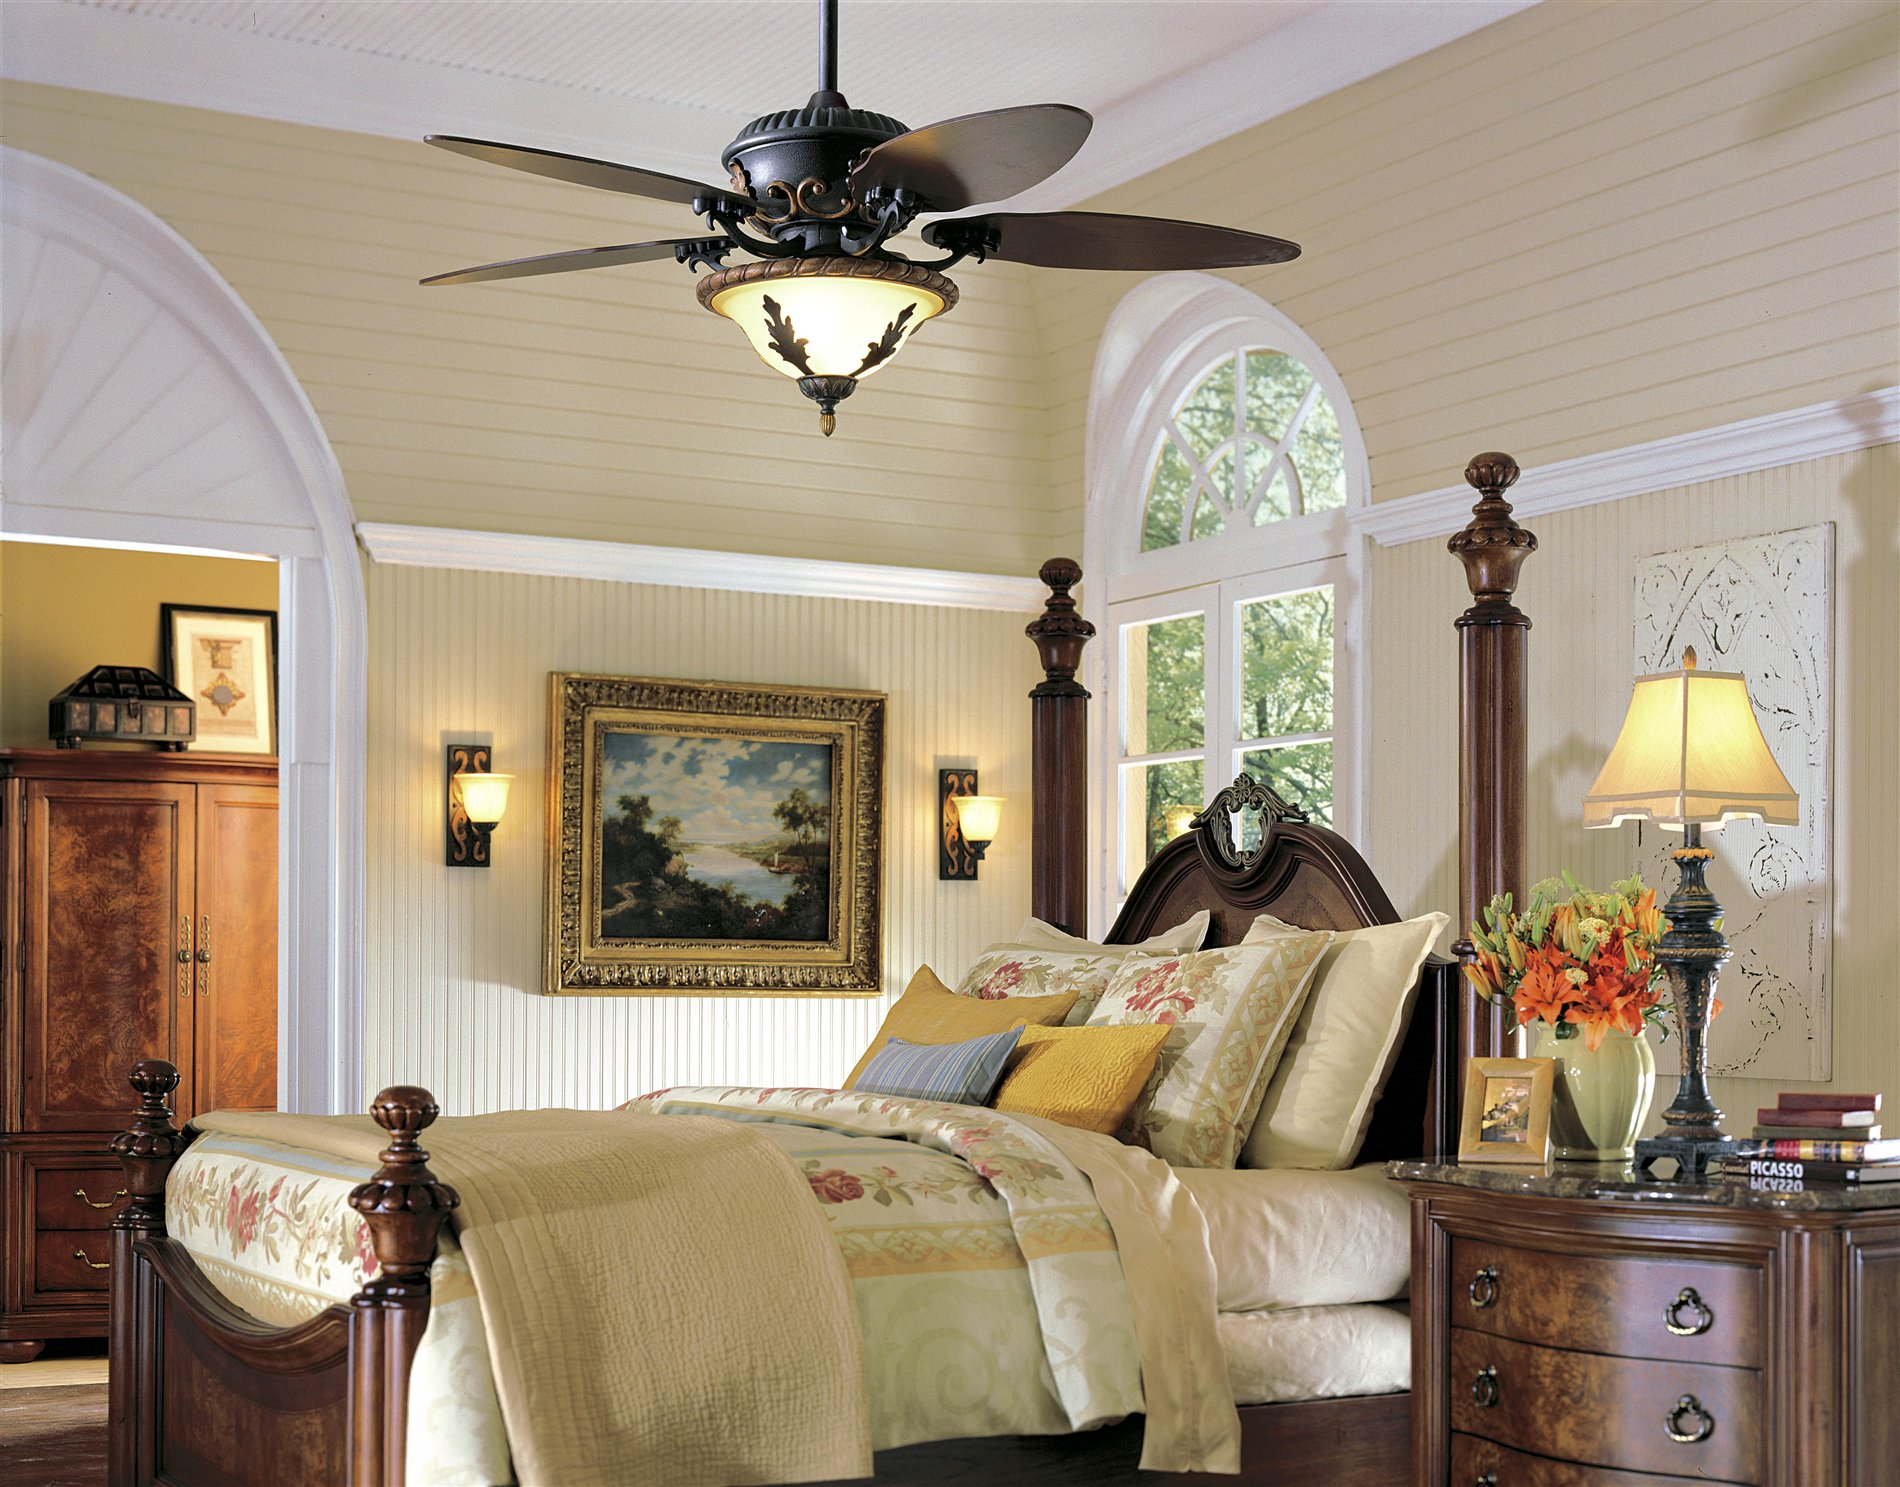 Cool Bedroom Ceiling Fans Part - 28: Amazing Beautiful Ceiling Fans With Lights For Classic Bedroom With Wooden  Furniture Bedroom Ceiling Fans With